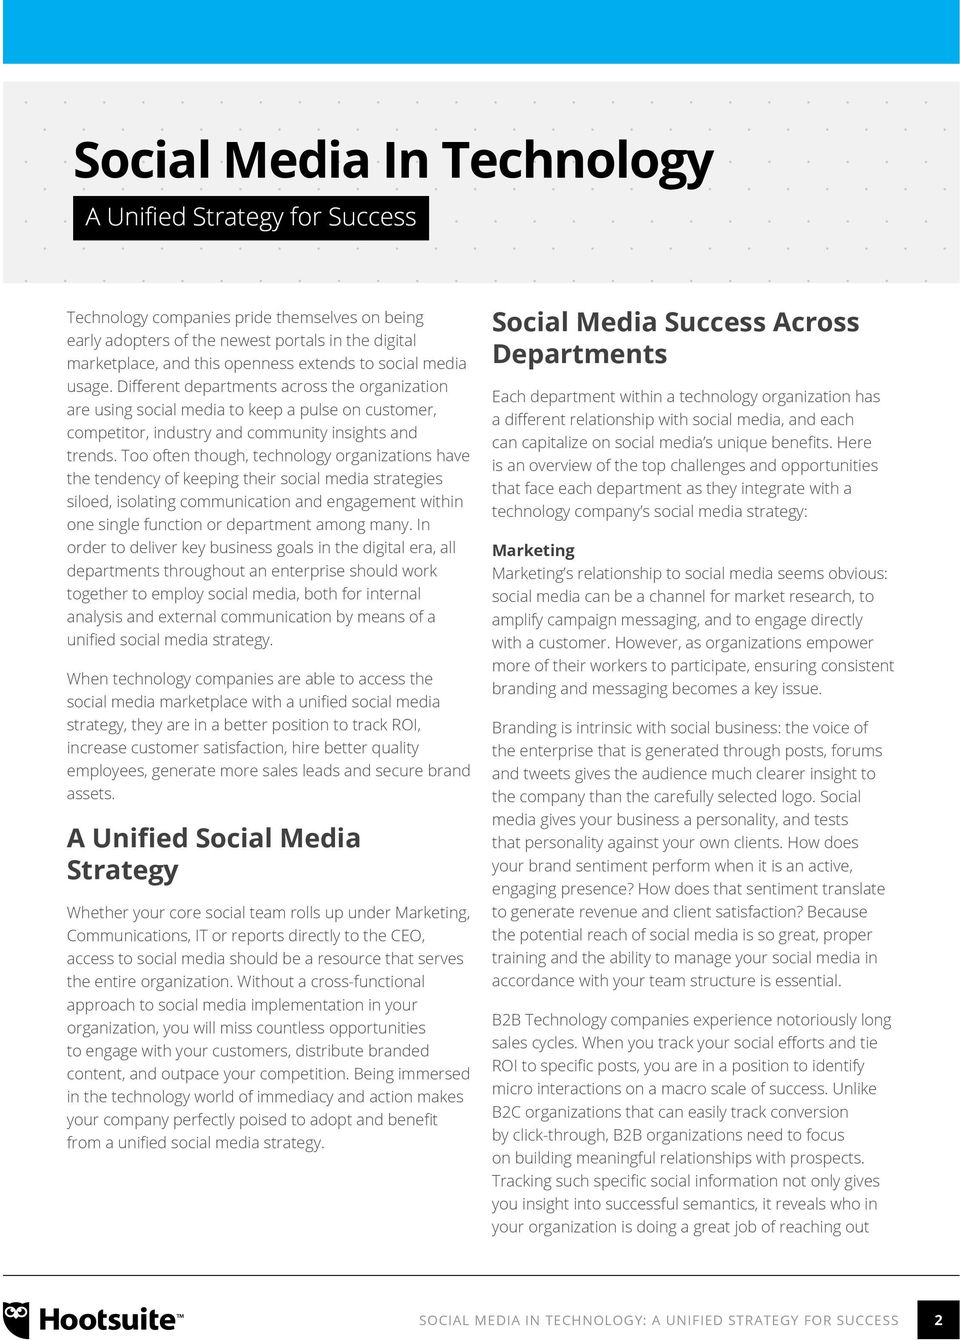 Too often though, technology organizations have the tendency of keeping their social media strategies siloed, isolating communication and engagement within one single function or department among